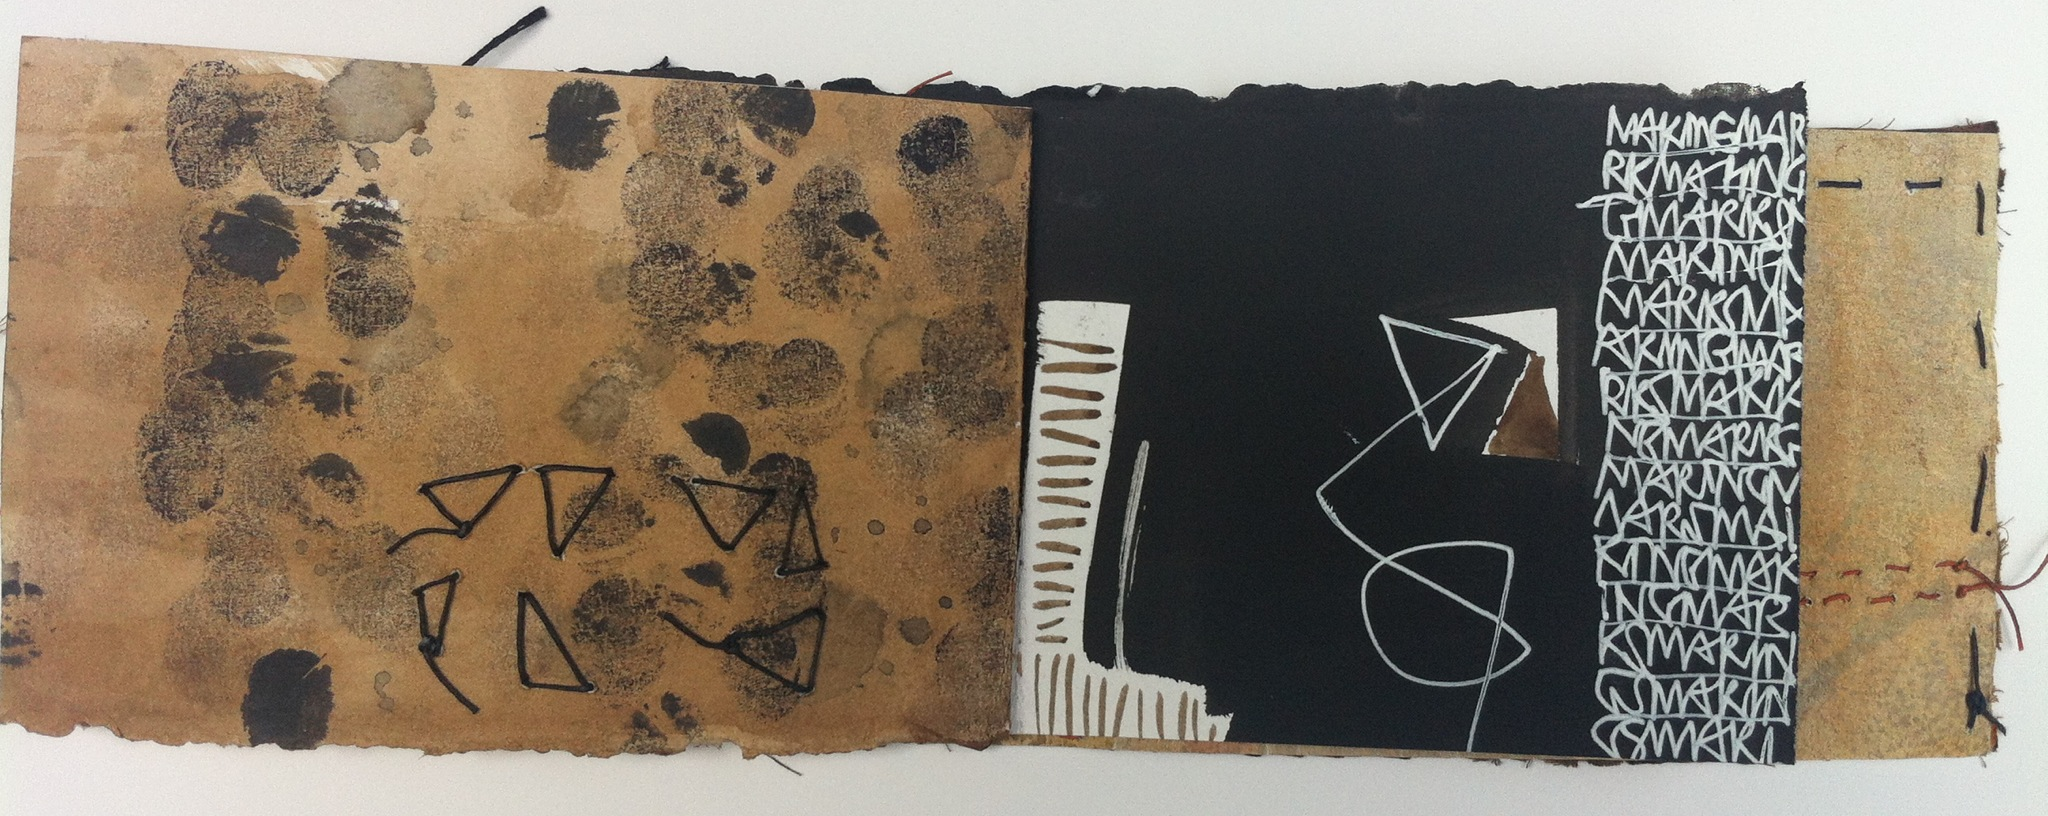 Mark Making with thread, fingers and ink